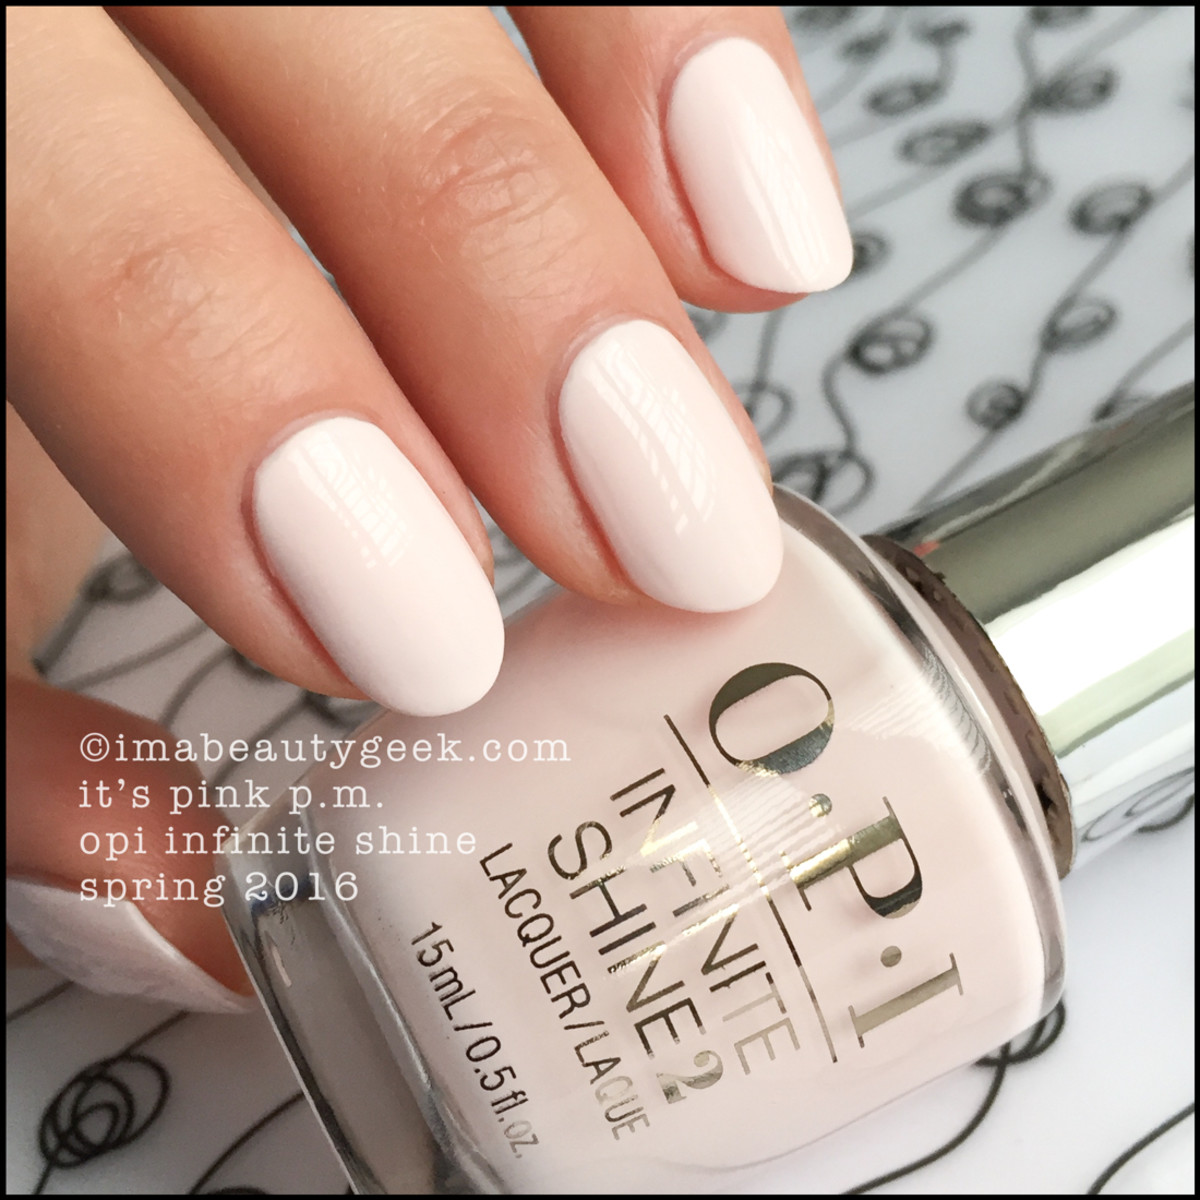 OPI Its Pink PM_OPI Infinite Shine Spring 2016